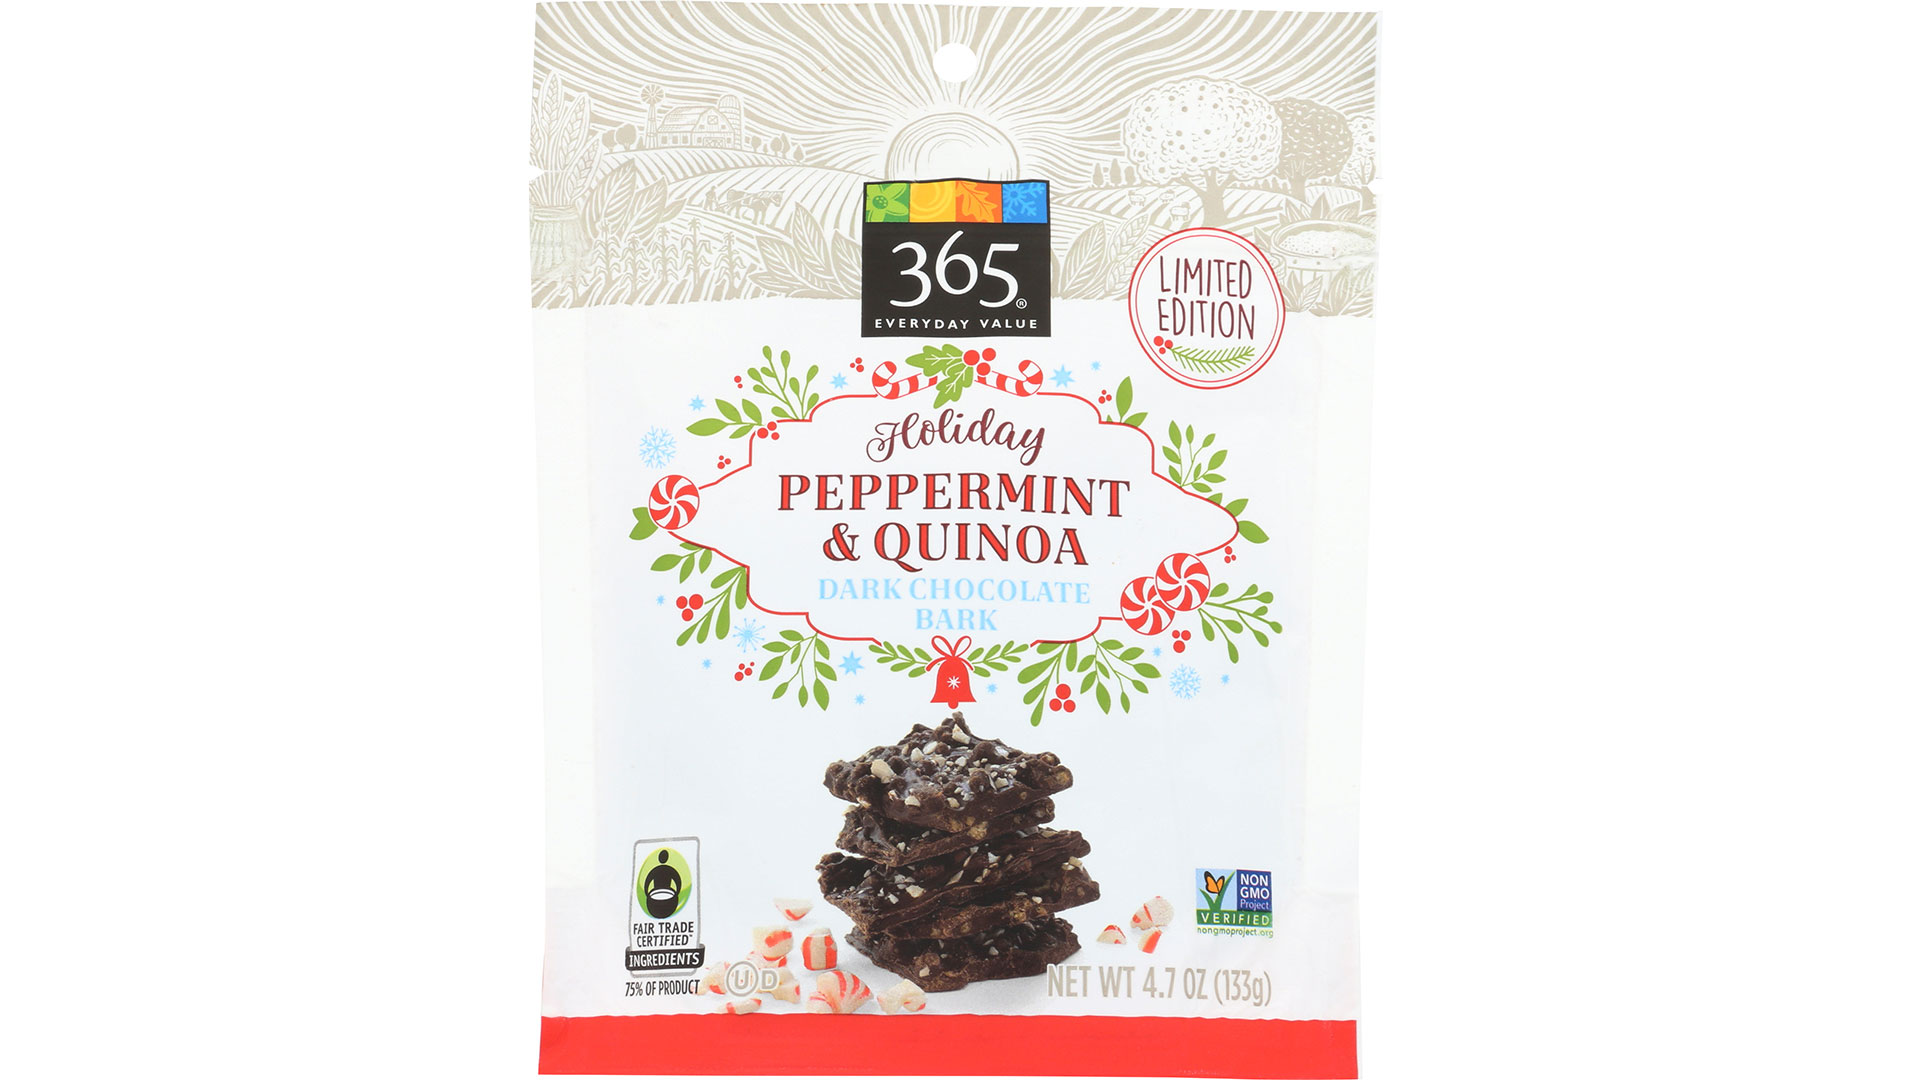 RX_1811 Whole Foods Holiday Peppermint Quinoa Dark Chocolate Bark